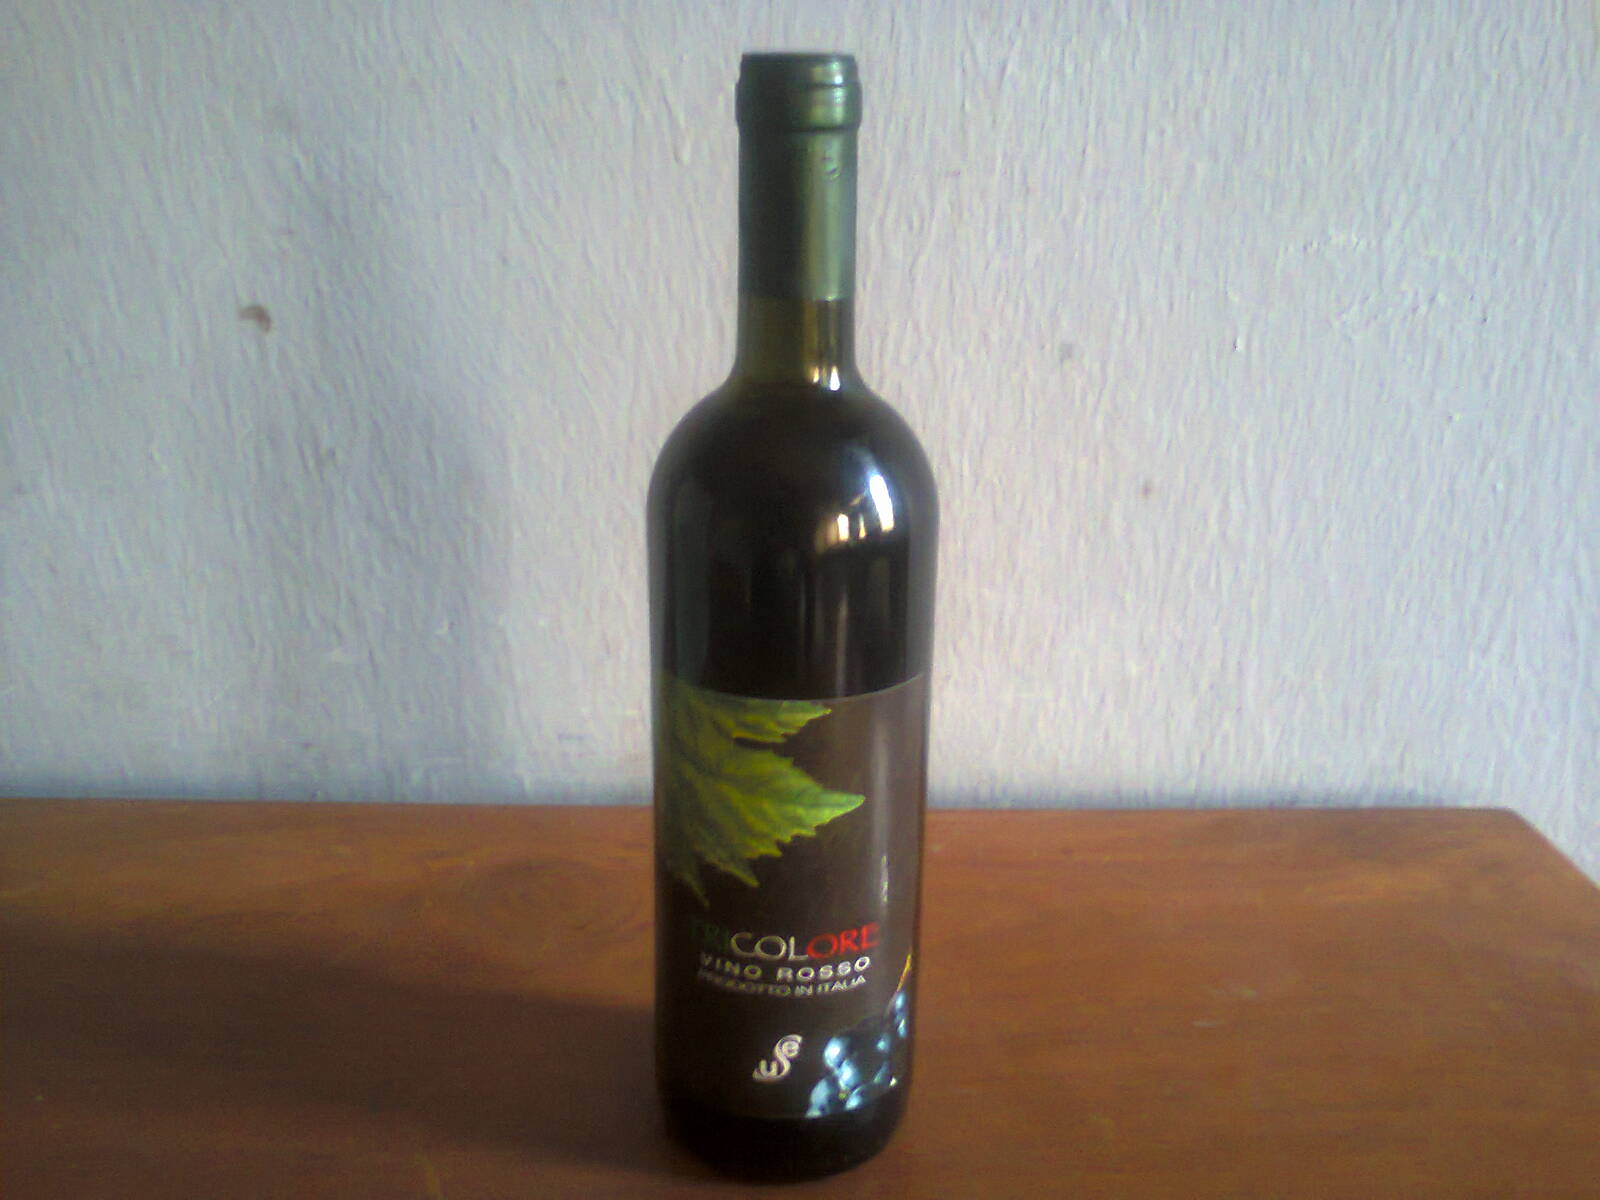 New Shipment Of Exotic Italian Wines At Cooool Prices Adverts